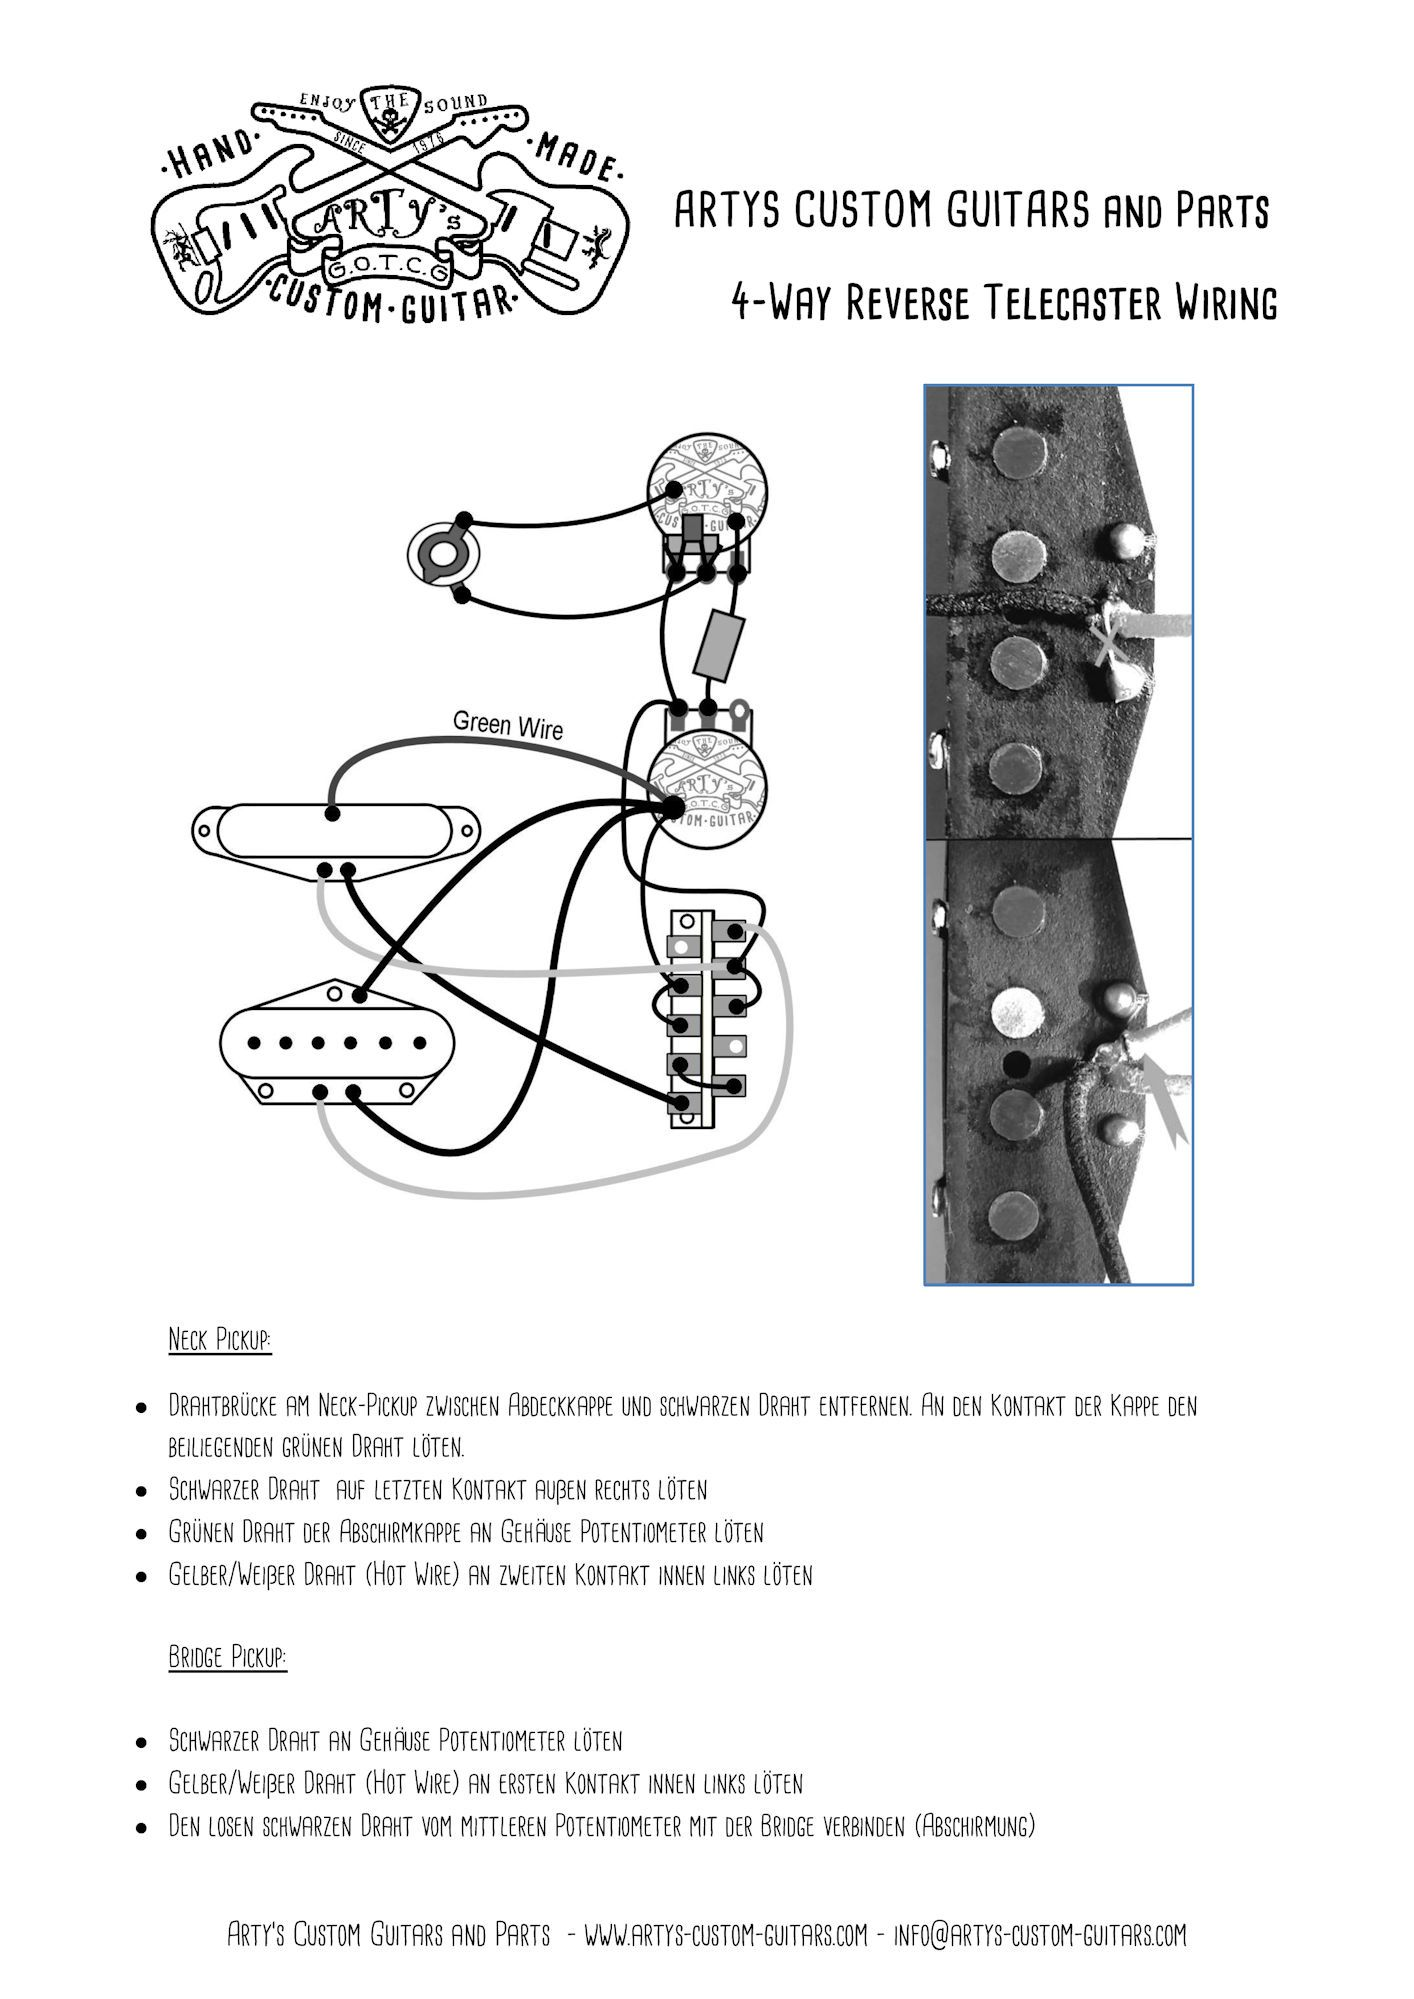 497c7bfde440da0c731b70fa3253046a arty's custom guitars wiring diagram 4 way reverse control plate Osterizer Blender Schematics at edmiracle.co